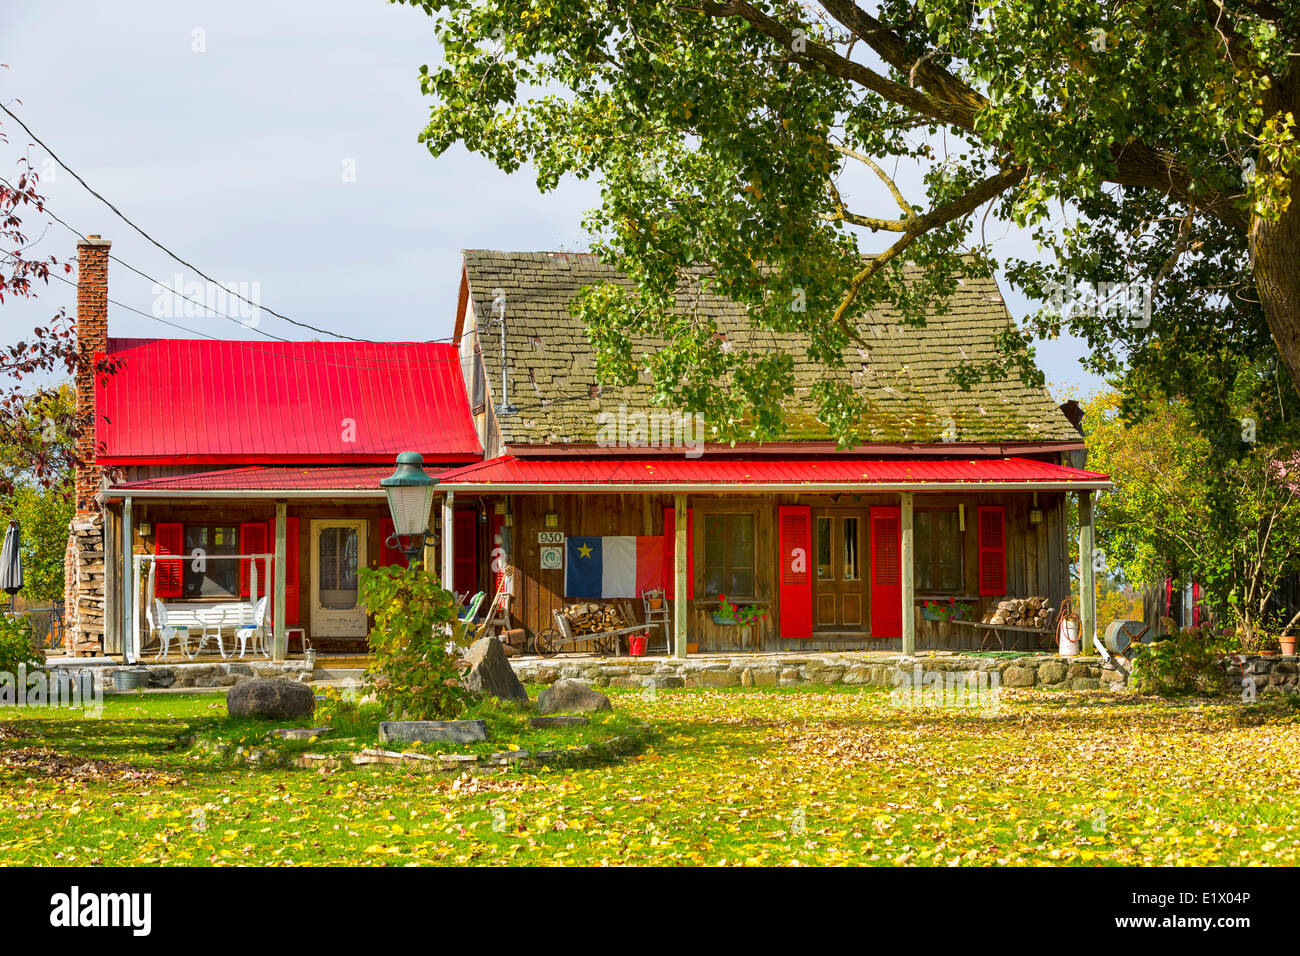 Maison Canadienne Photos & Maison Canadienne Images - Alamy